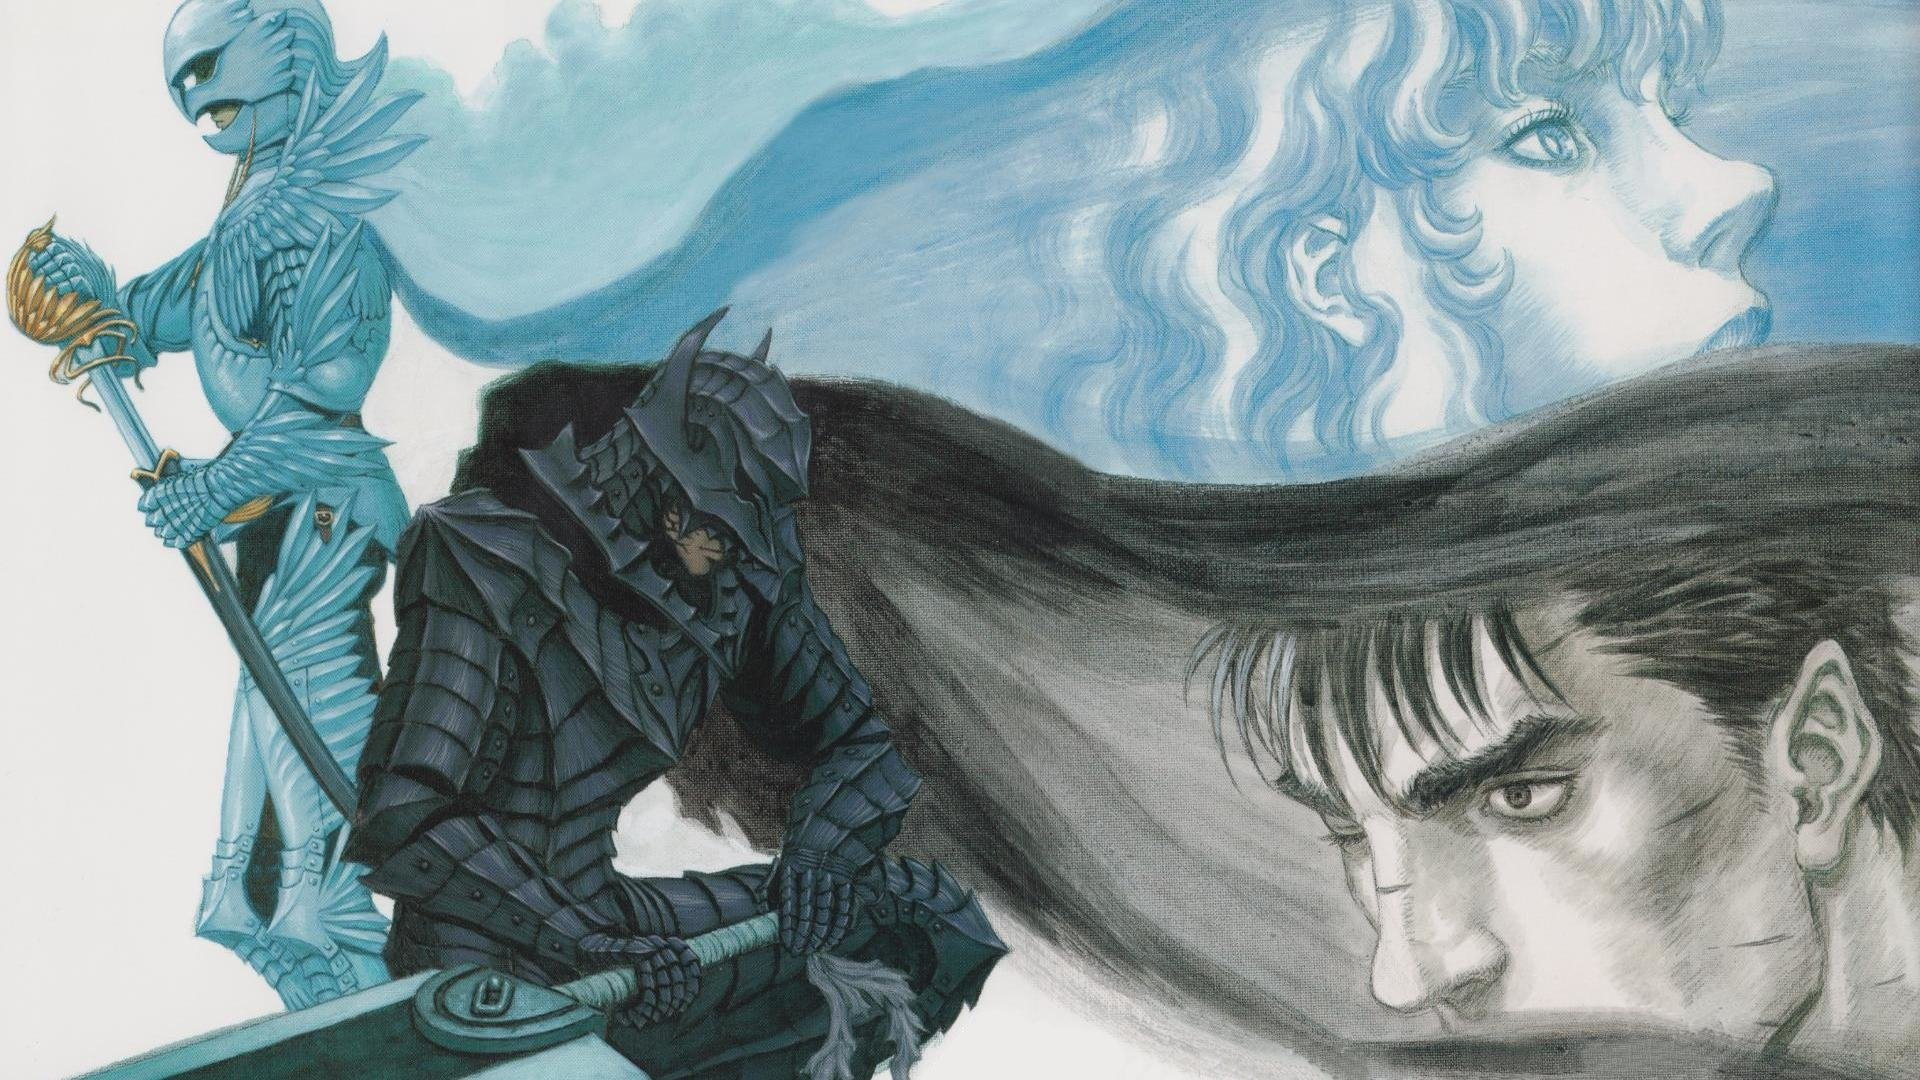 Griffith and Guts HD Wallpaper Background Image 1920x1080 ID 1920x1080